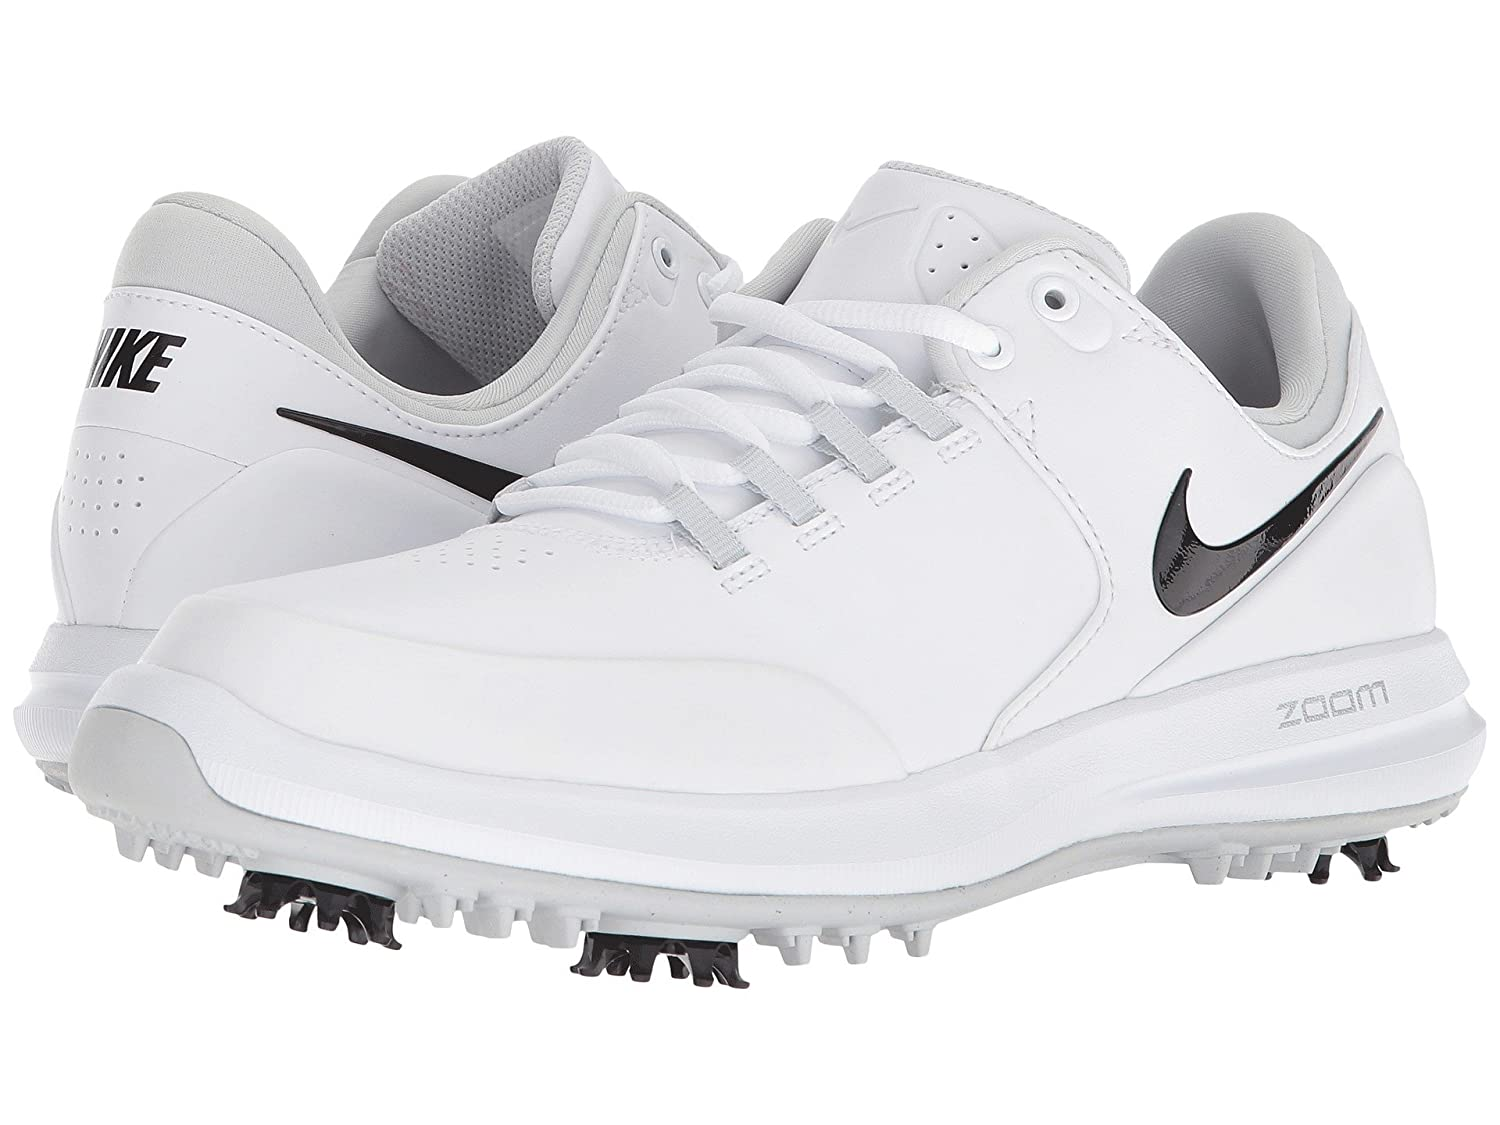 [NIKE(ナイキ)] レディーステニスシューズスニーカー靴 Air Zoom Accurate White/Black/Metallic Silver/Pure Platinum 11 (28cm) B - Medium B07FBDJ6ZC